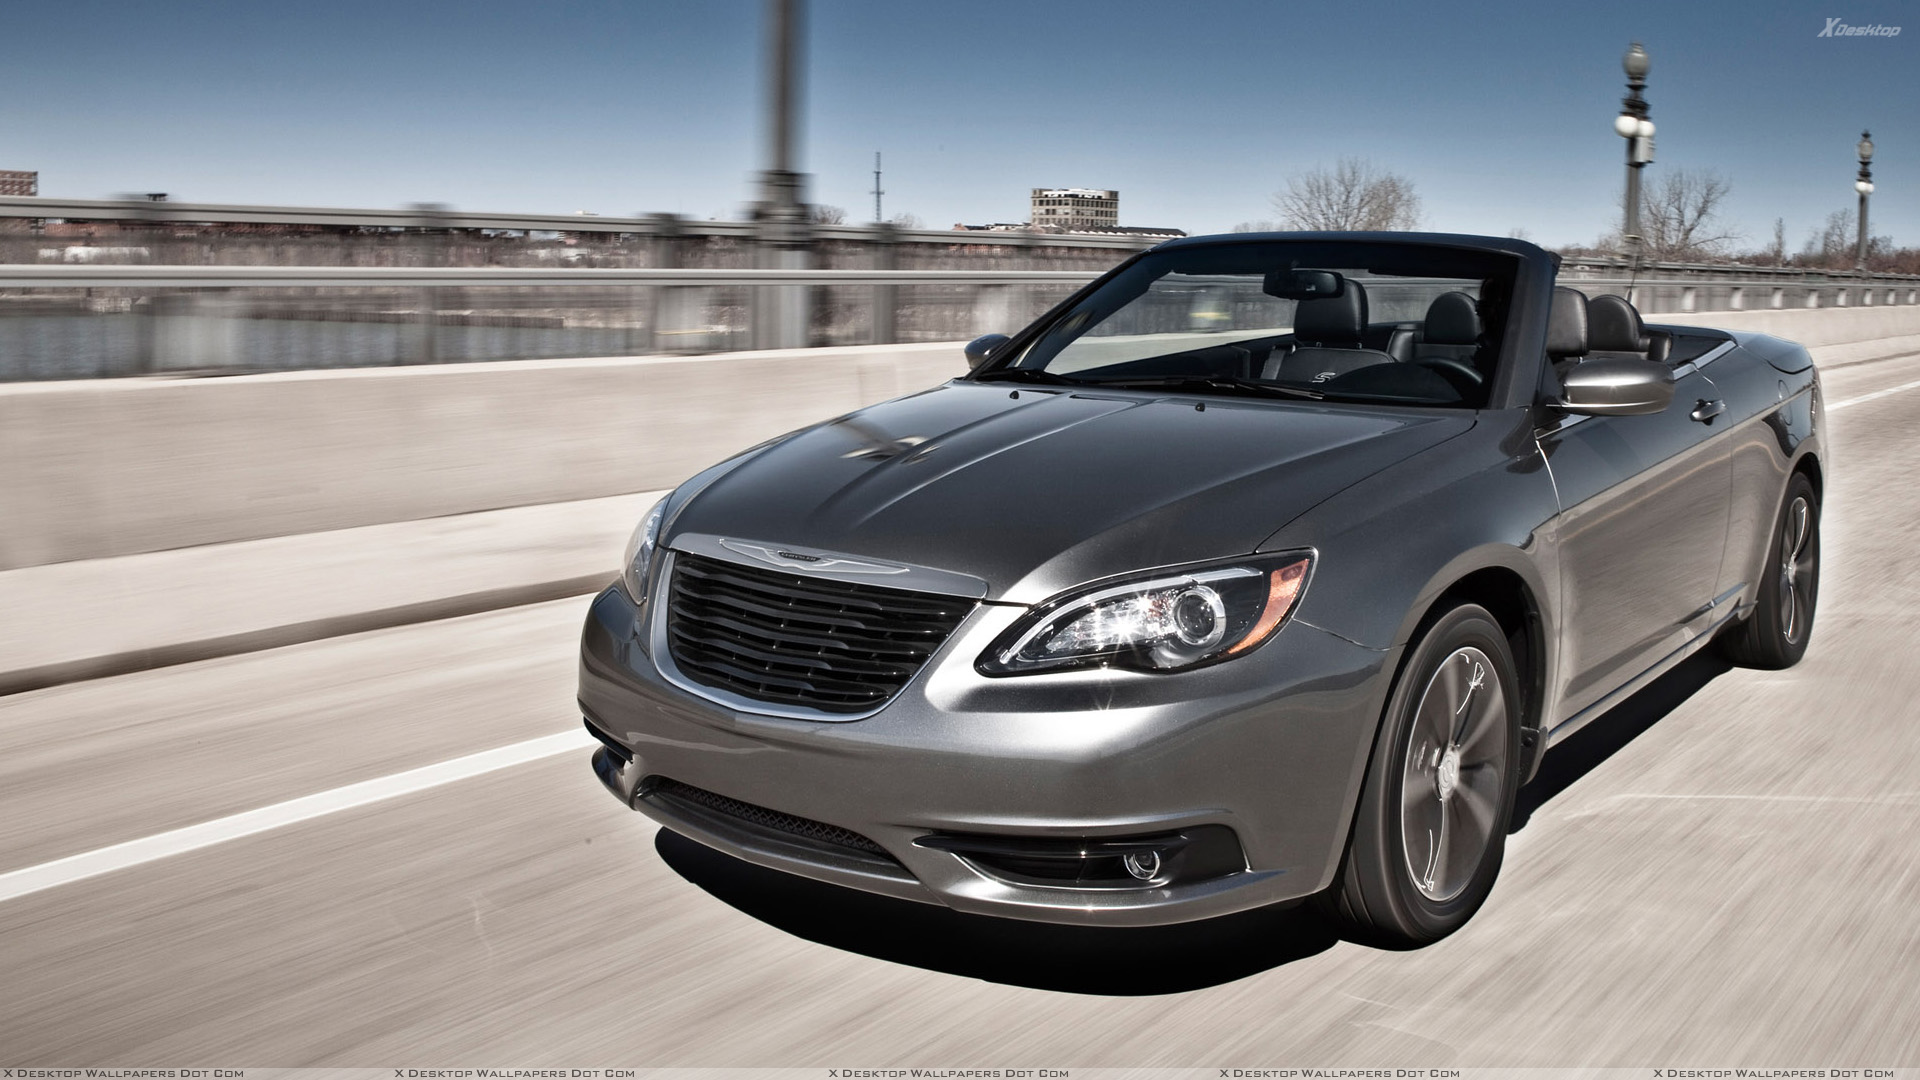 Front Pose Of 2011 Chrysler 200 S Convertible In Grey Wallpaper 1920x1080